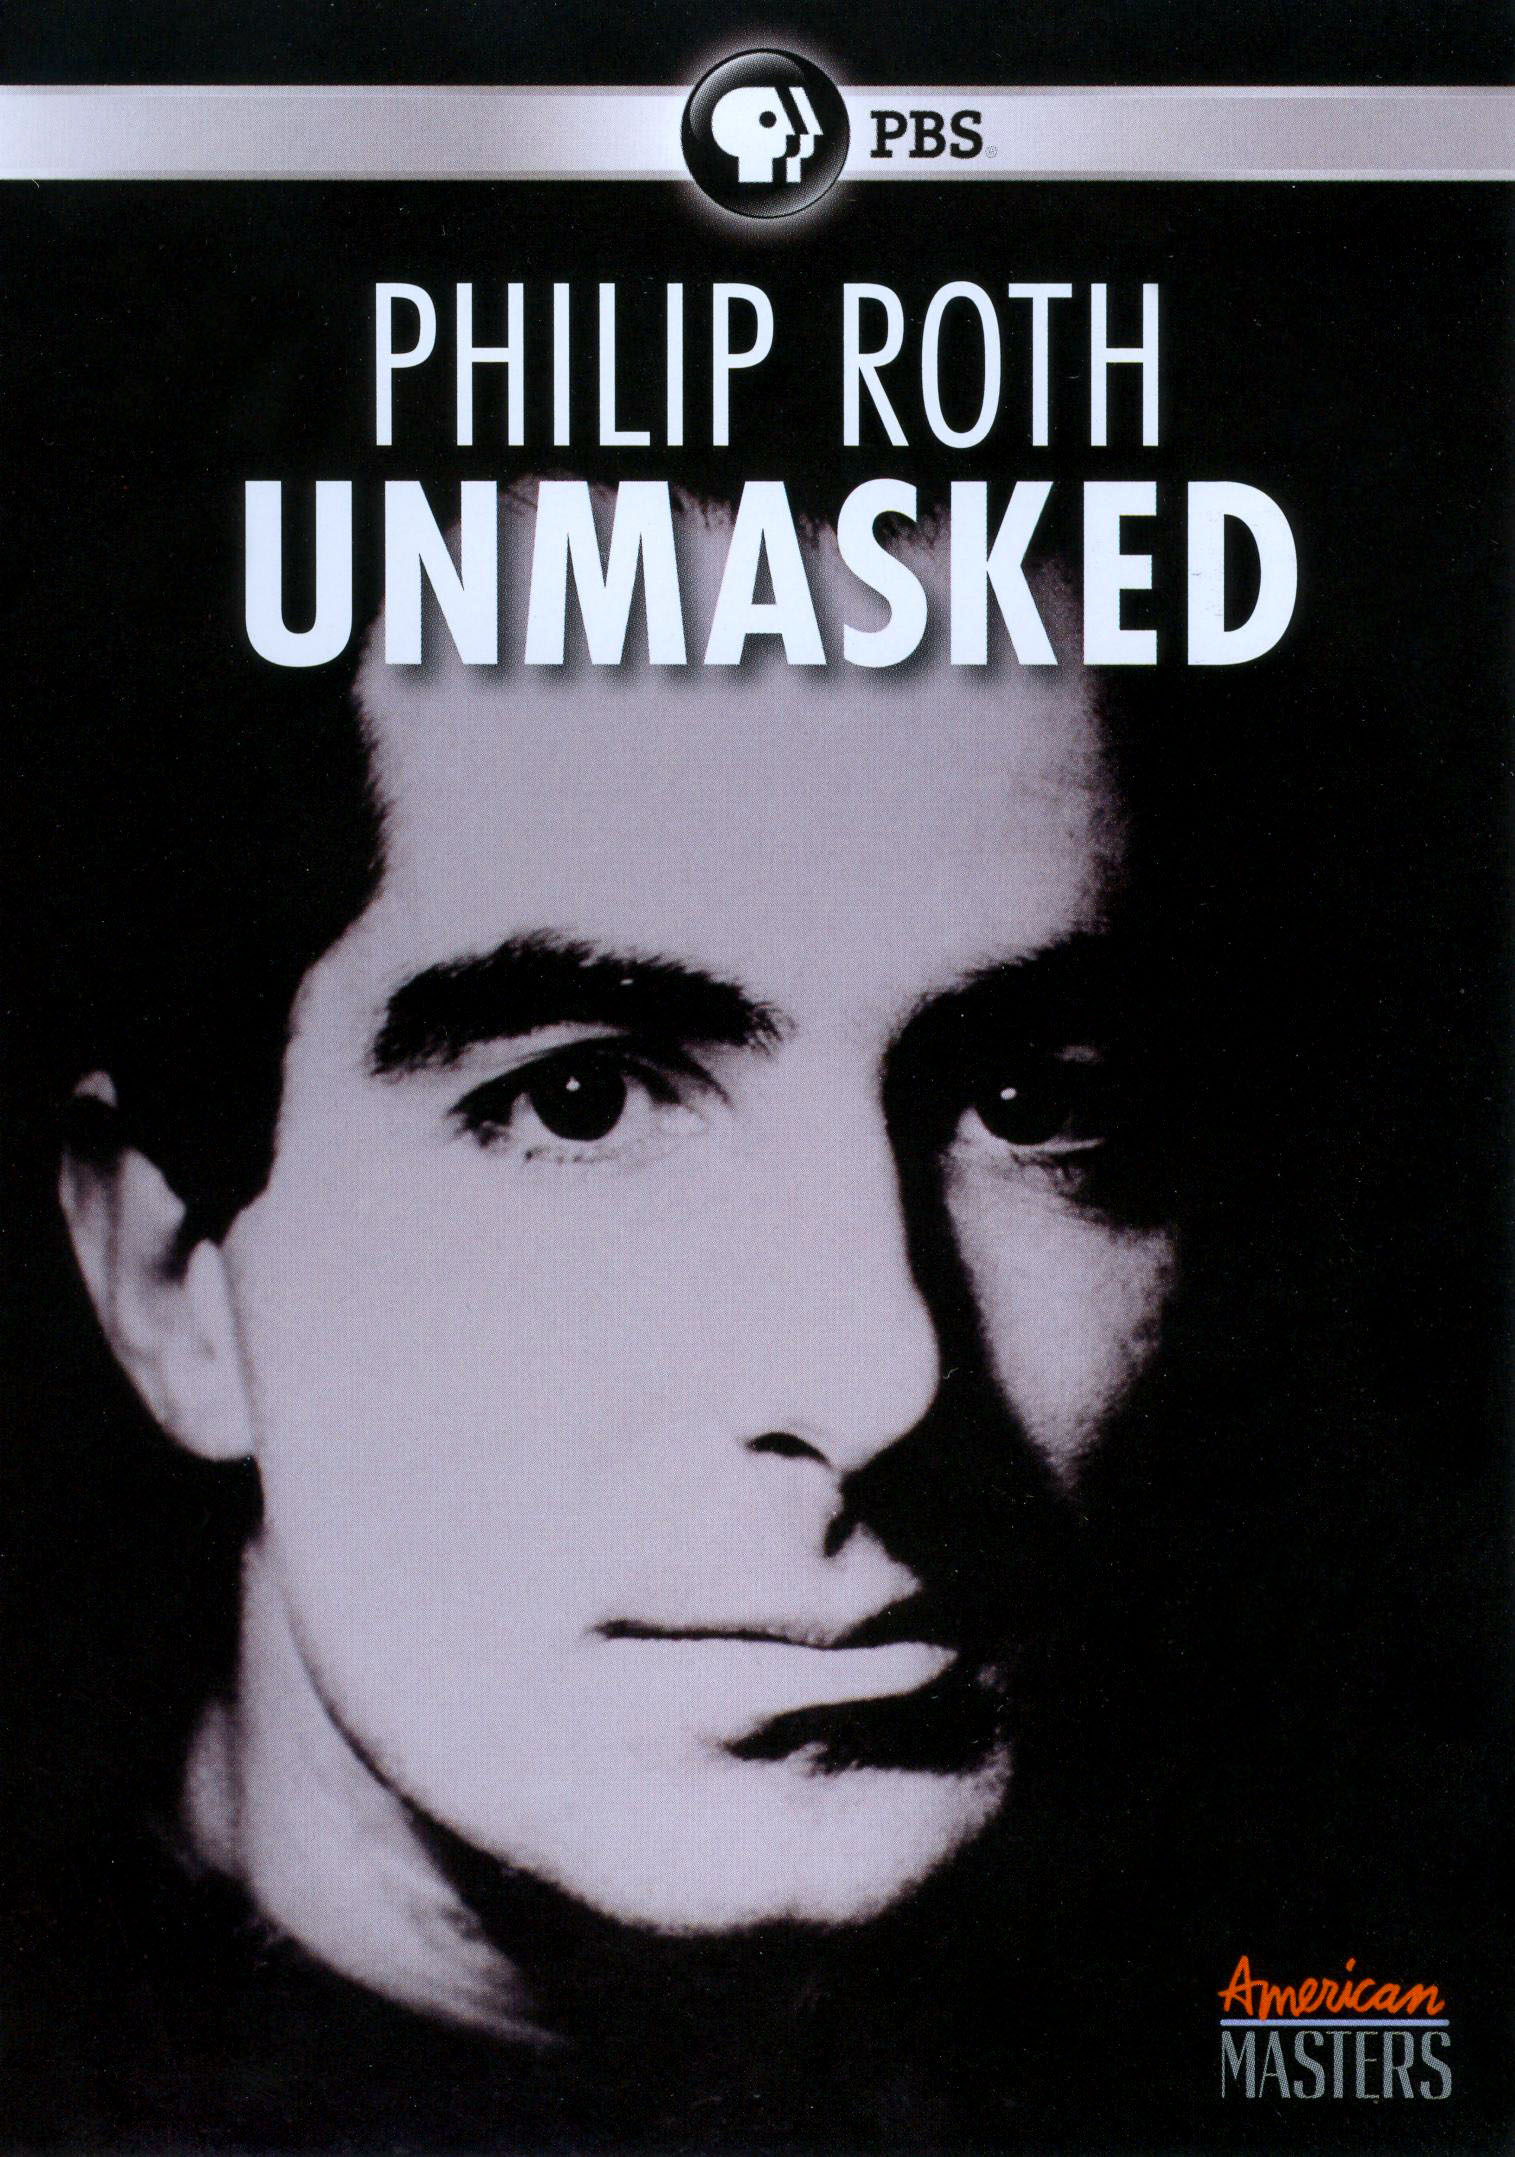 Philip Roth unmasked [videorecording]